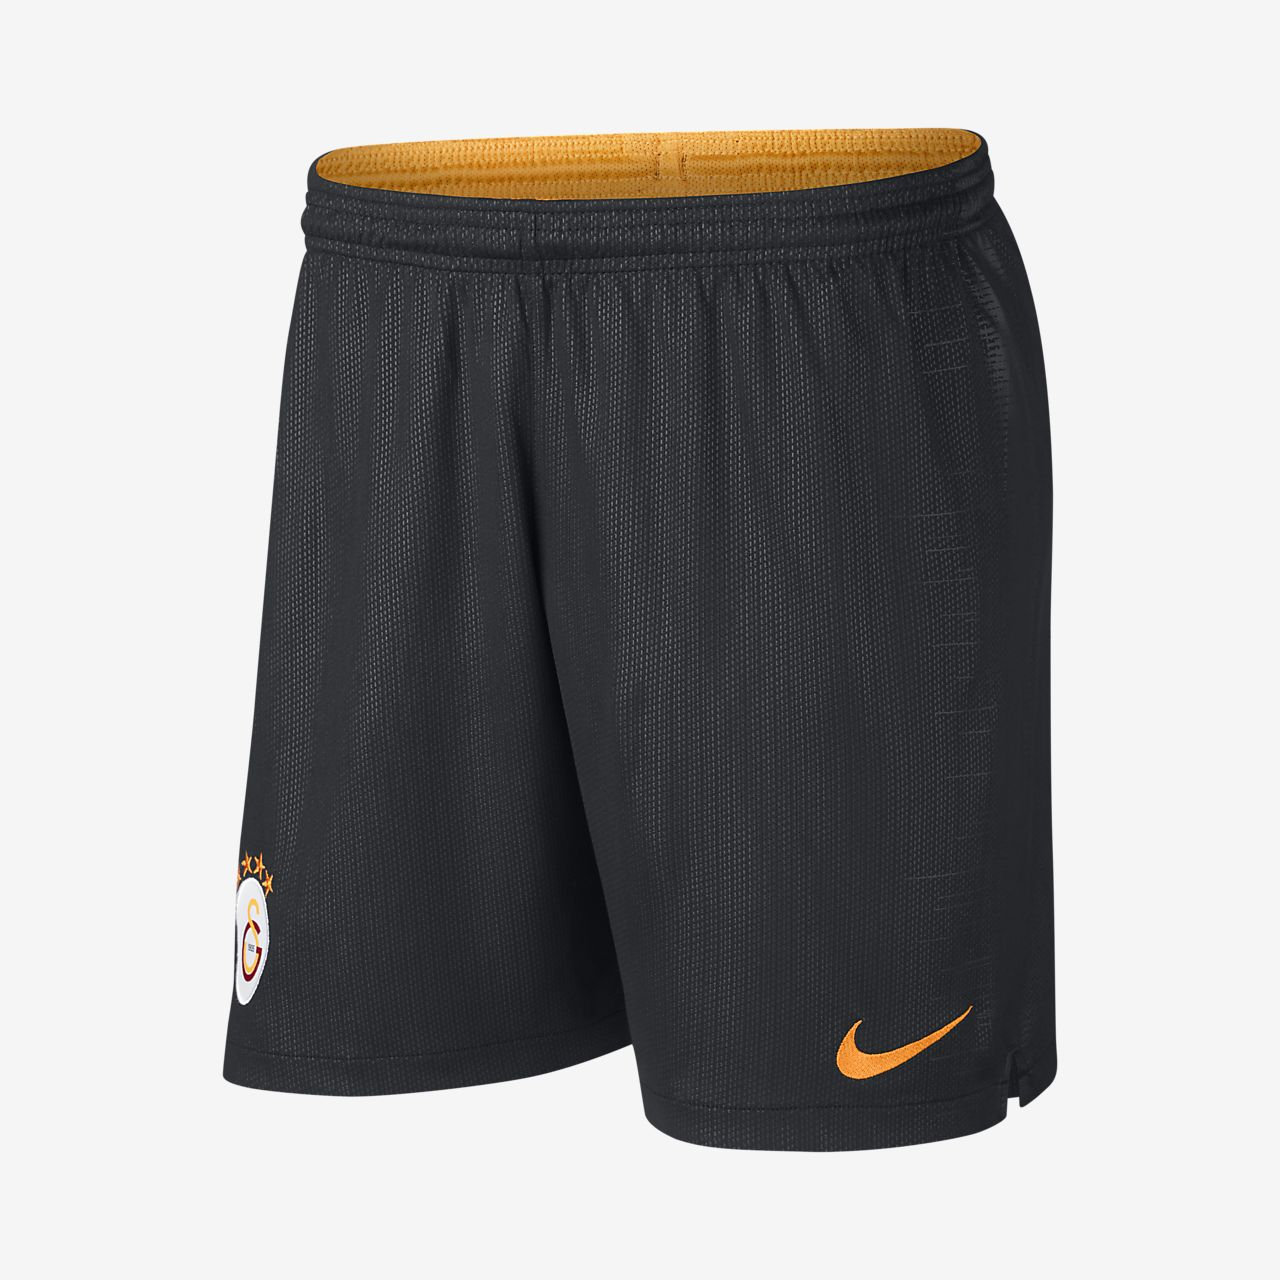 2018/19 Galatasaray S.K. Stadium Home/Away Herren-Fußballshorts